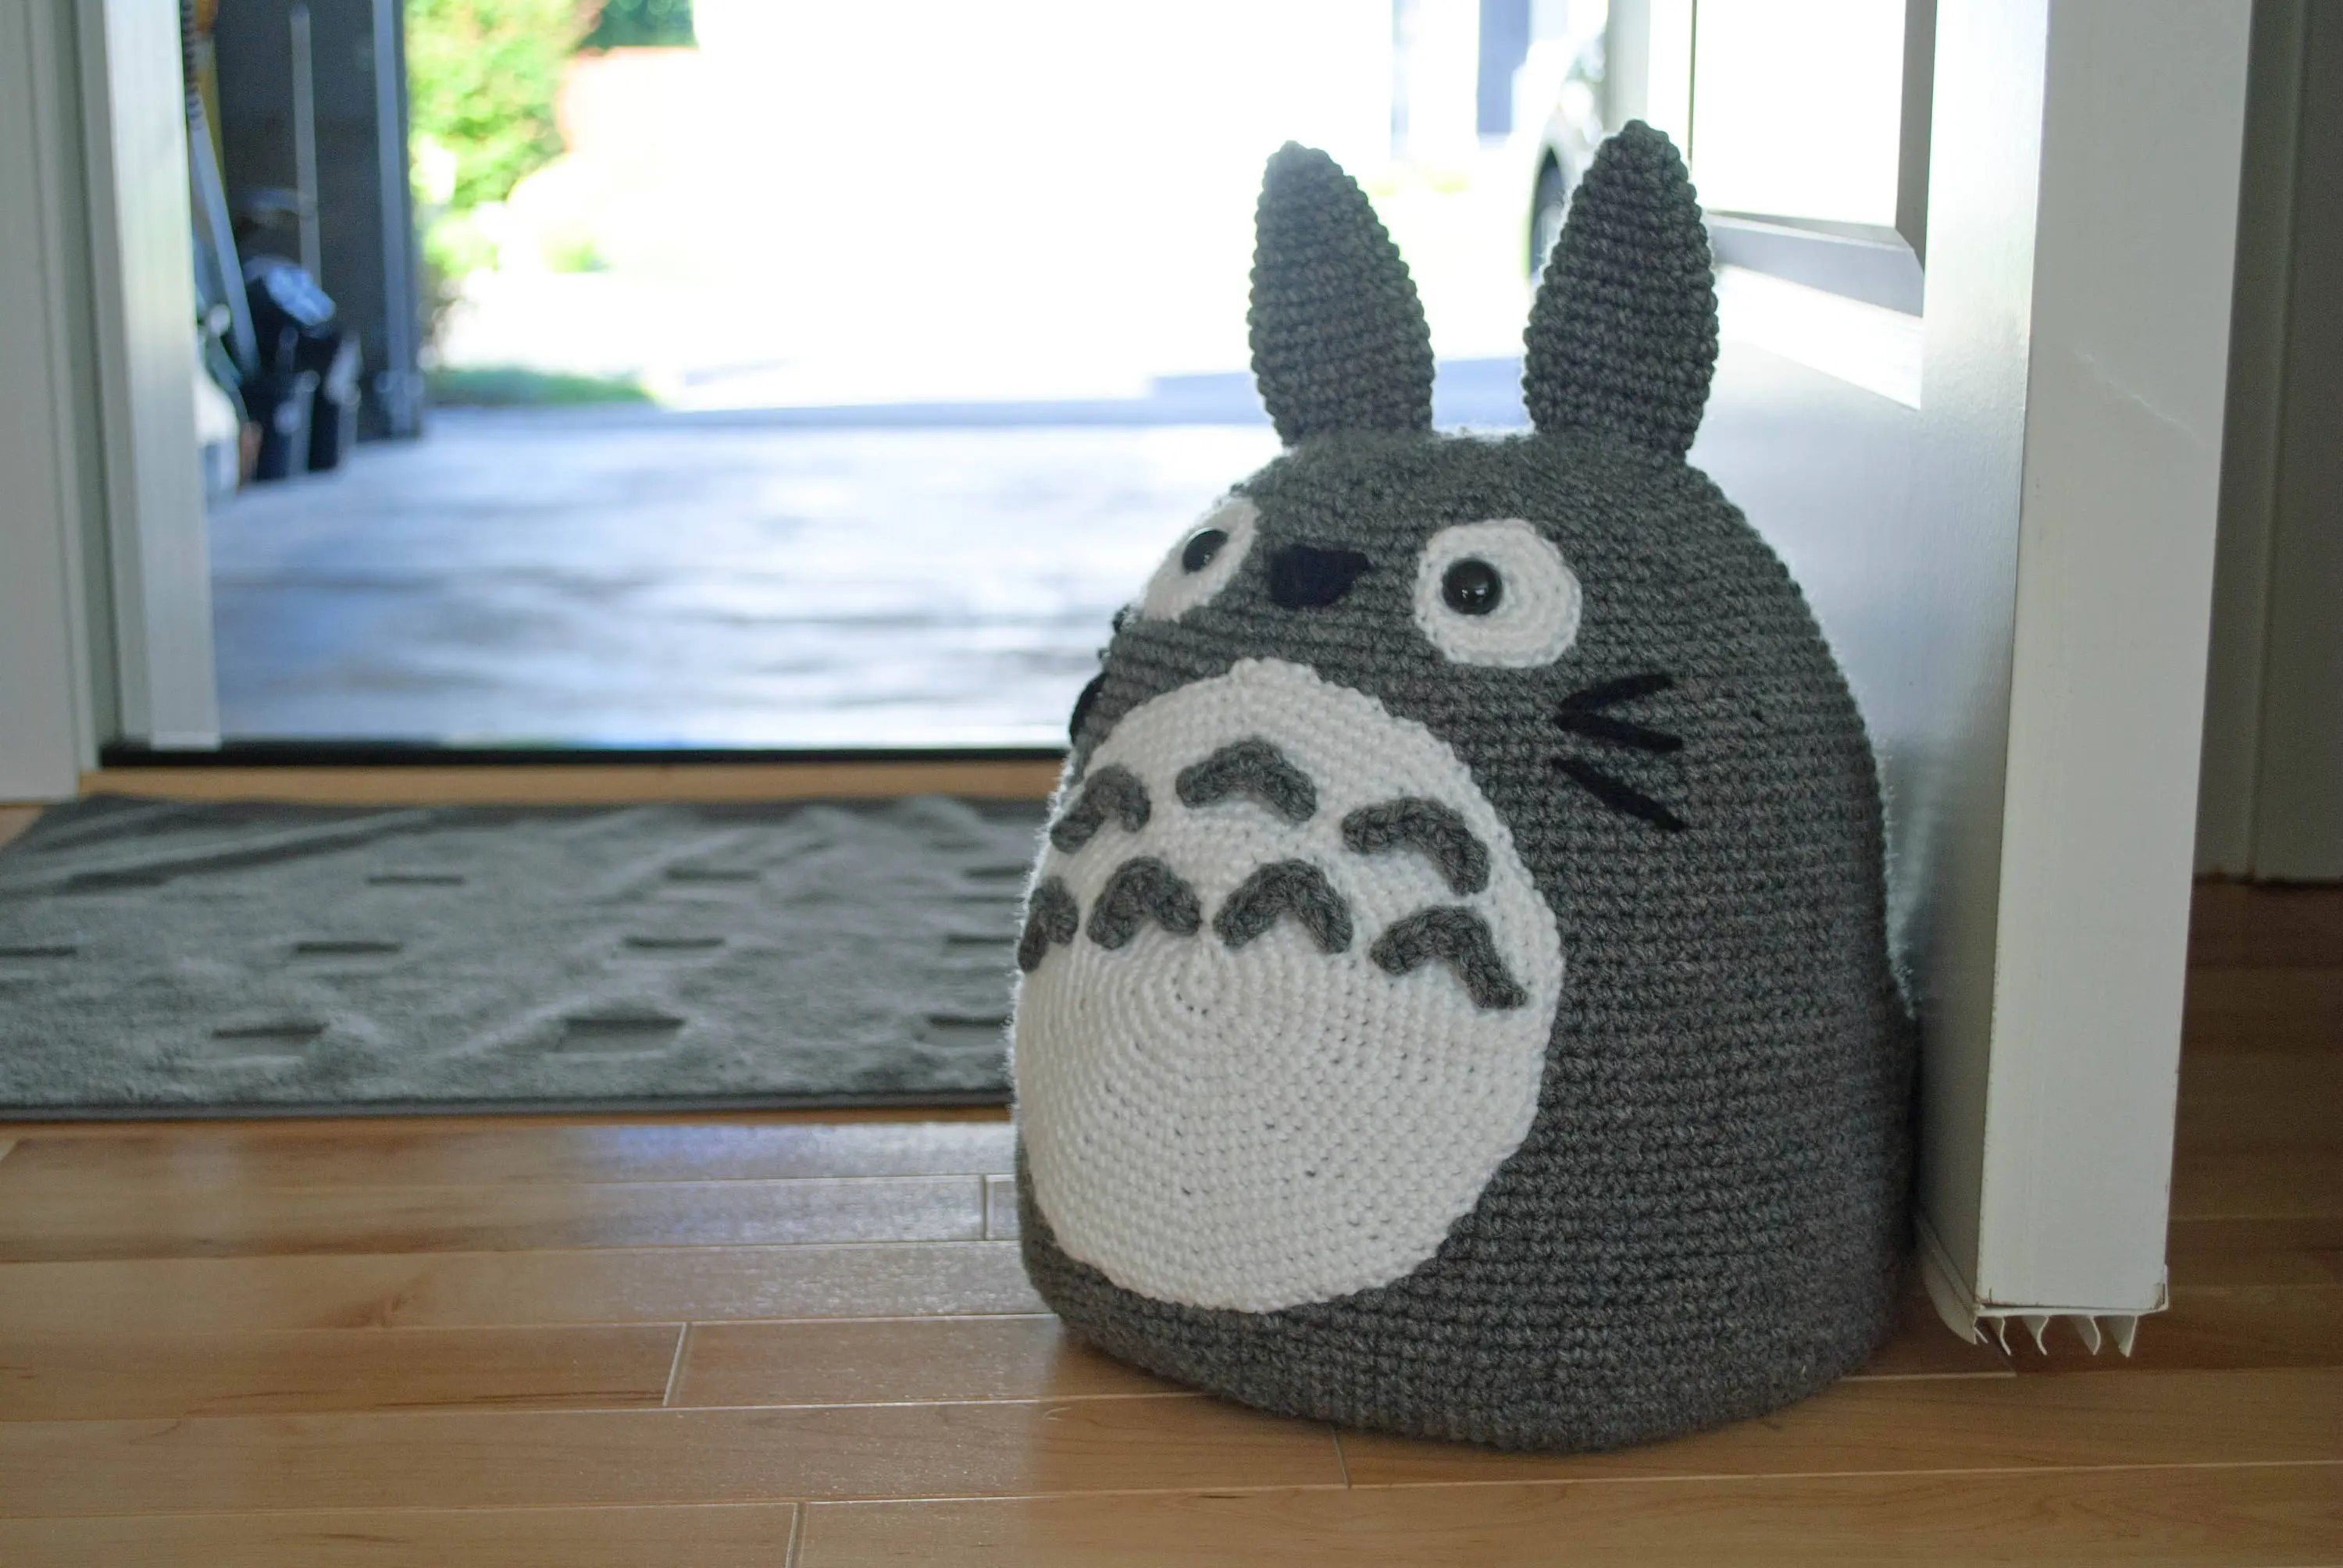 Totoro Bettwäsche Totoro Doorstop Pdf Crochet Pattern Amigurumi Inspired By My Neighbor Totoro